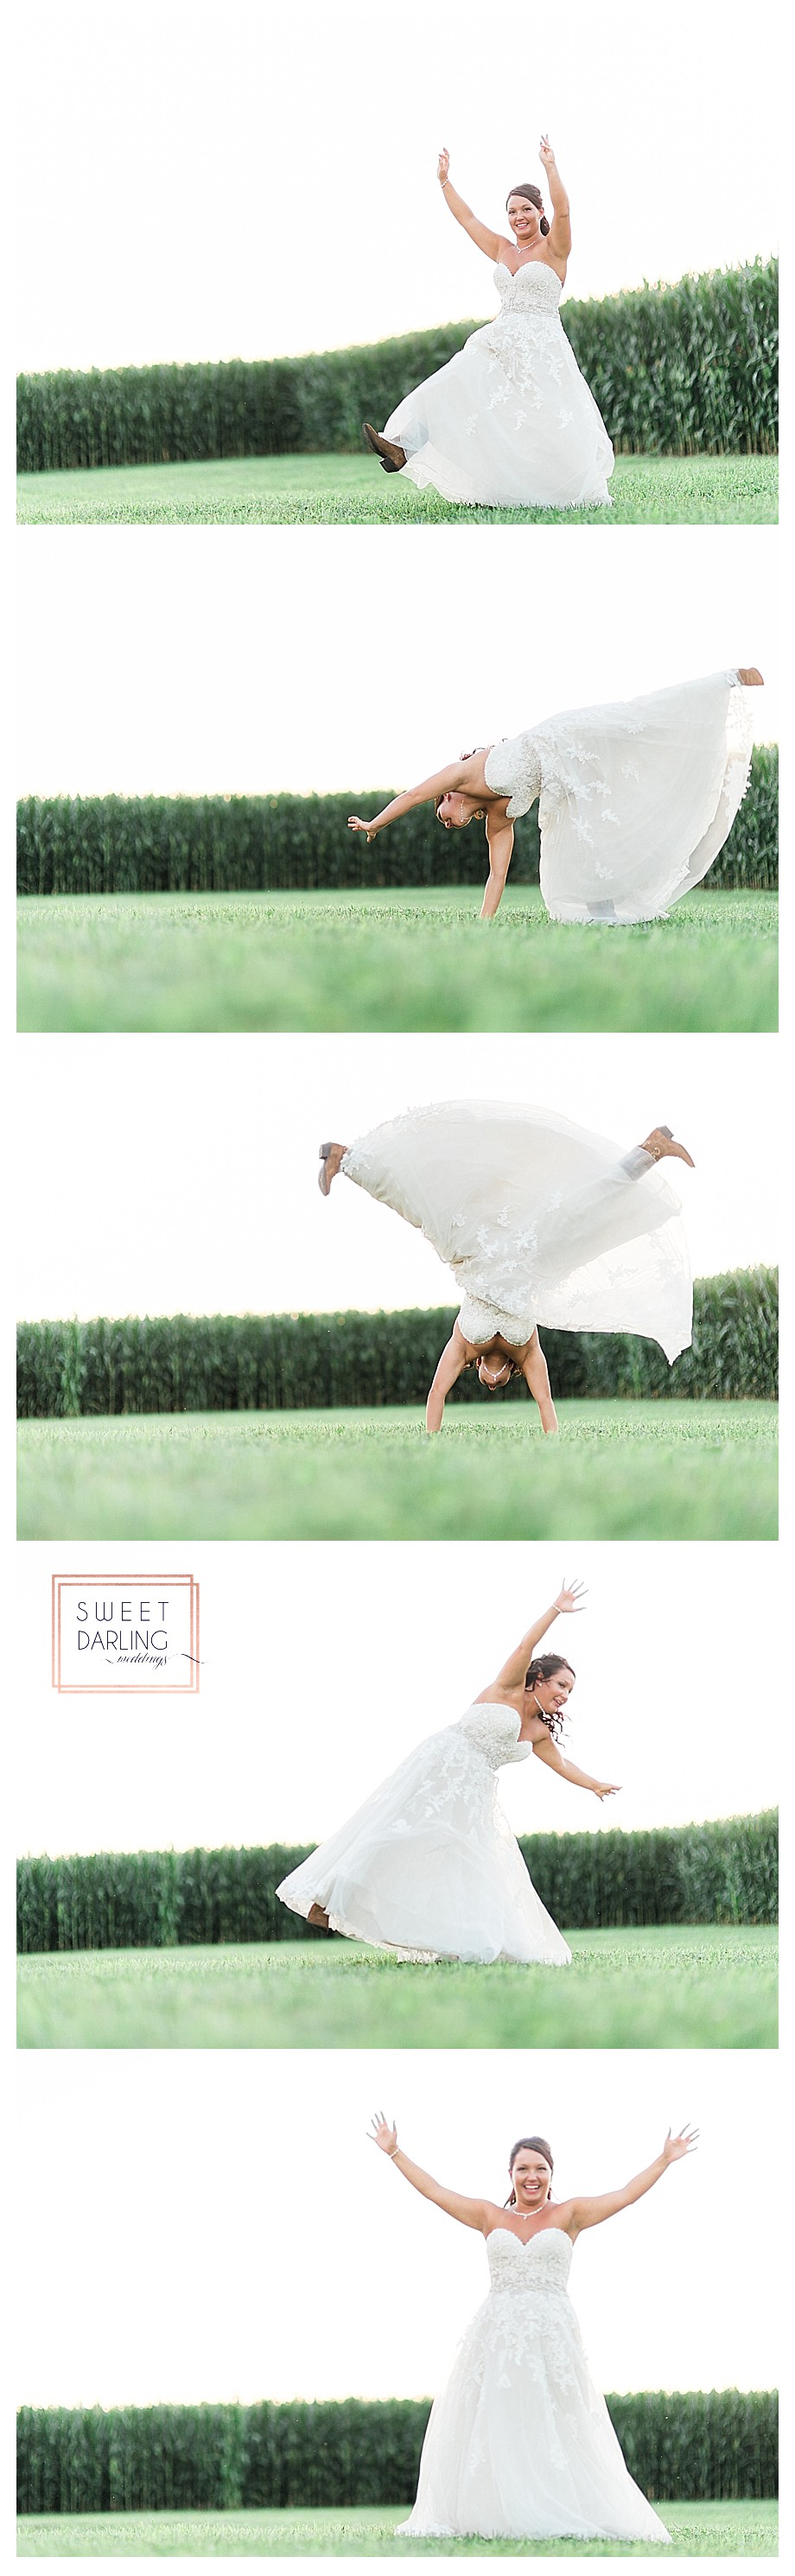 bride former cheerleader does cartwheels in wedding dress